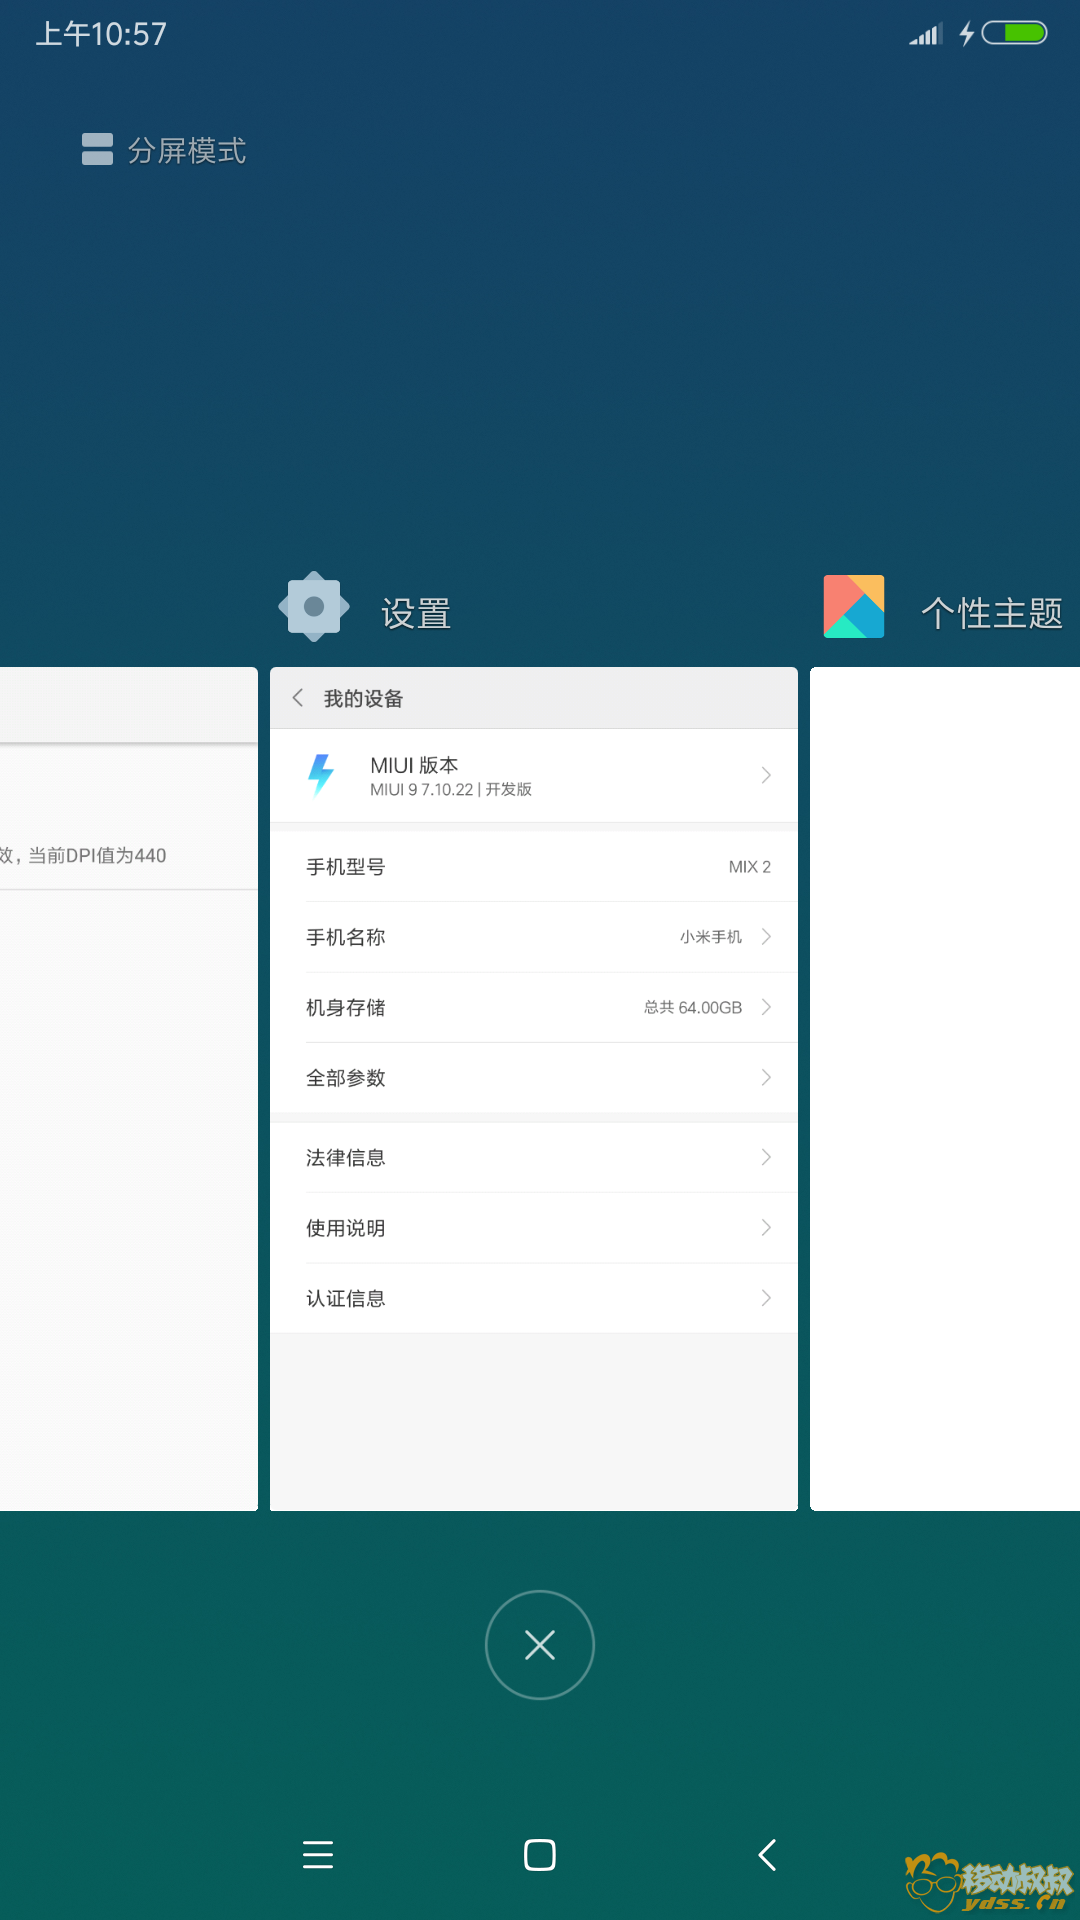 Screenshot_2017-10-22-10-57-07-594_com.android.systemui.png